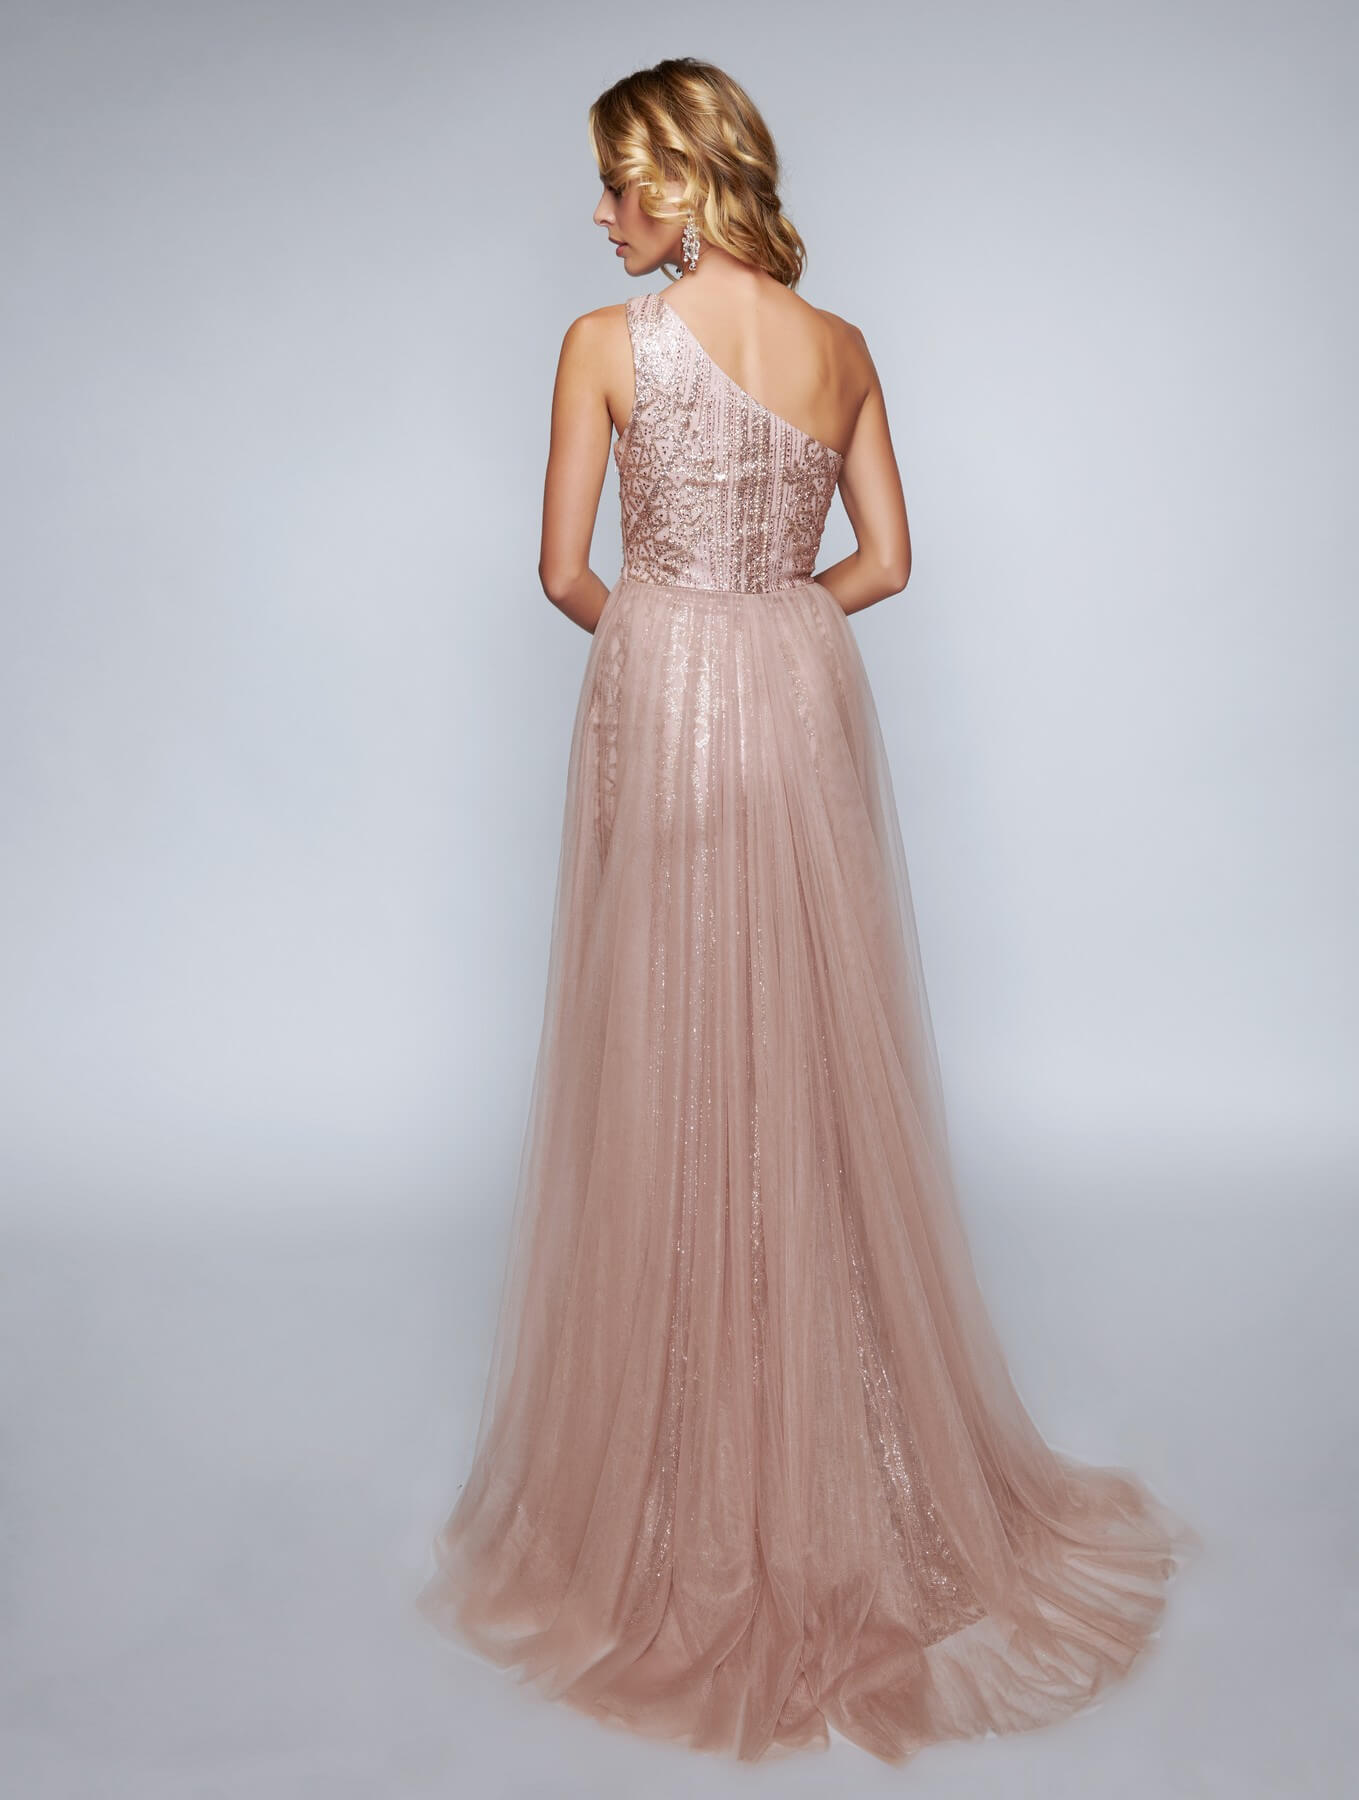 Nina Canacci Rose Gold Size 16 Pageant Prom One Shoulder Side slit Dress on Queenly